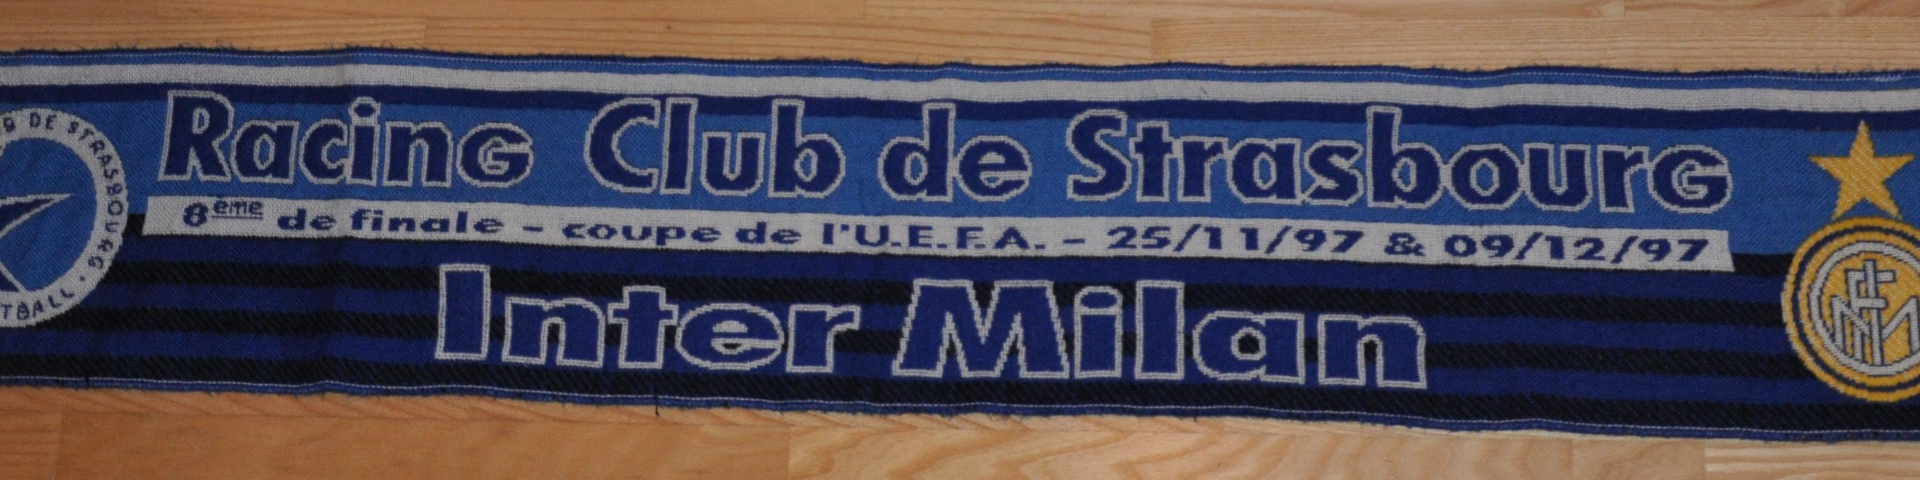 Do half-and-half scarves have a purpose?